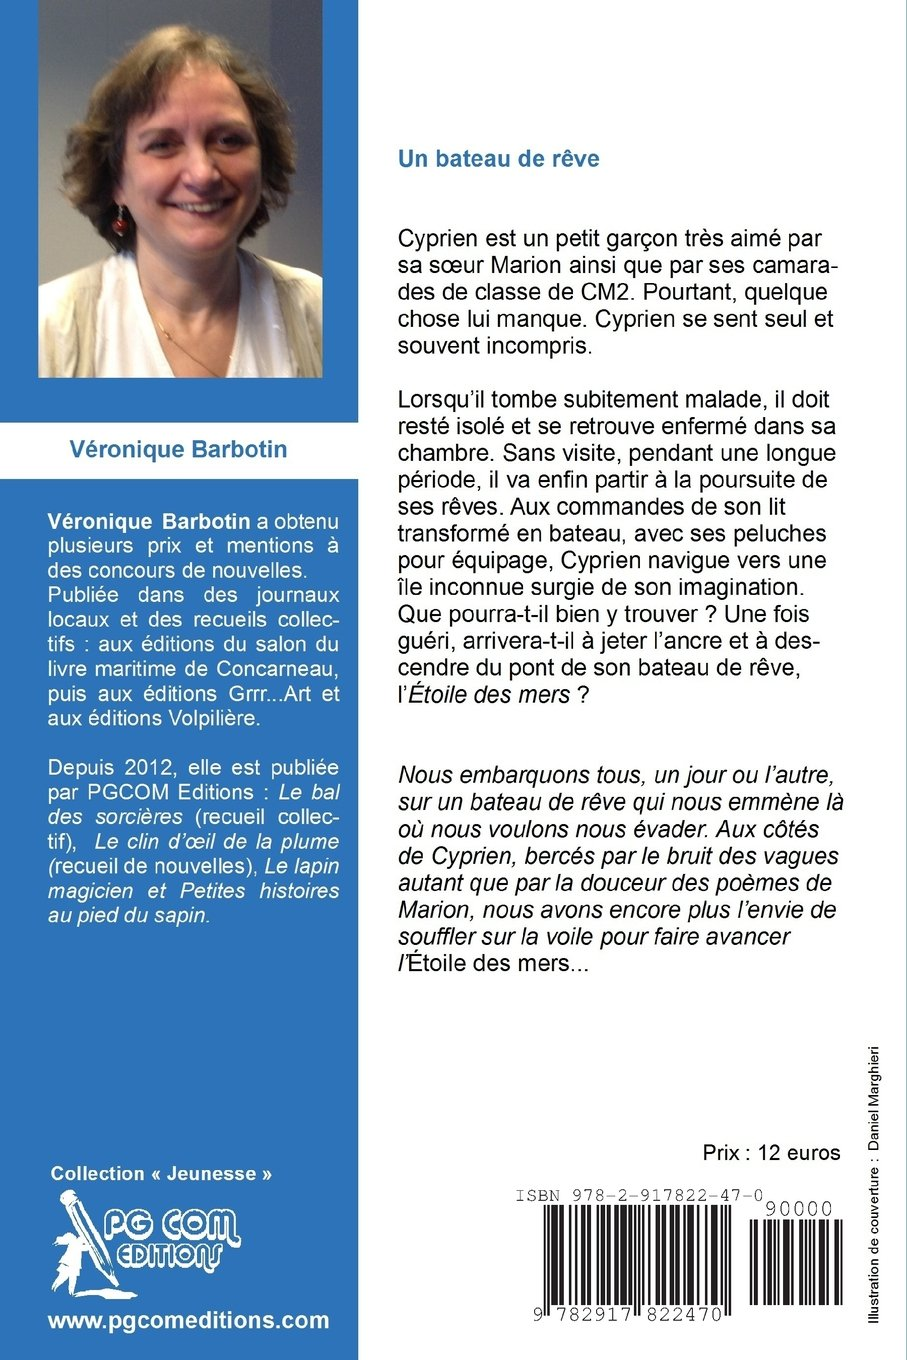 Un bateau de reve (French Edition): Véronique Barbotin: 9782917822470: Amazon.com: Books